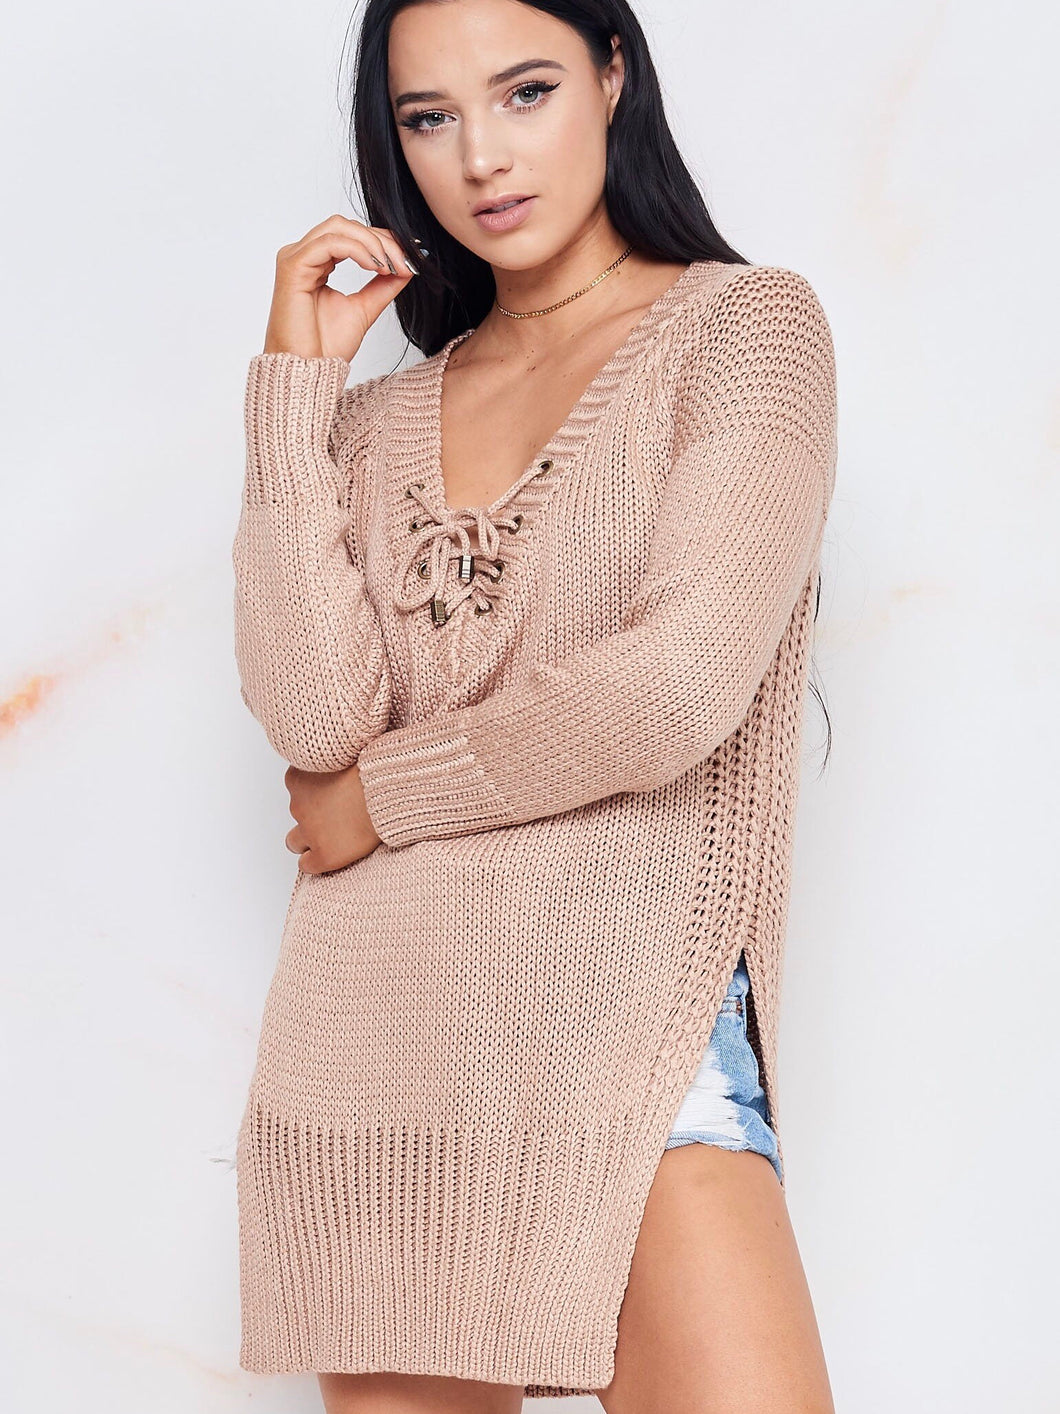 Love All Knit Lace Up Sweater - Boho Valley Boutique